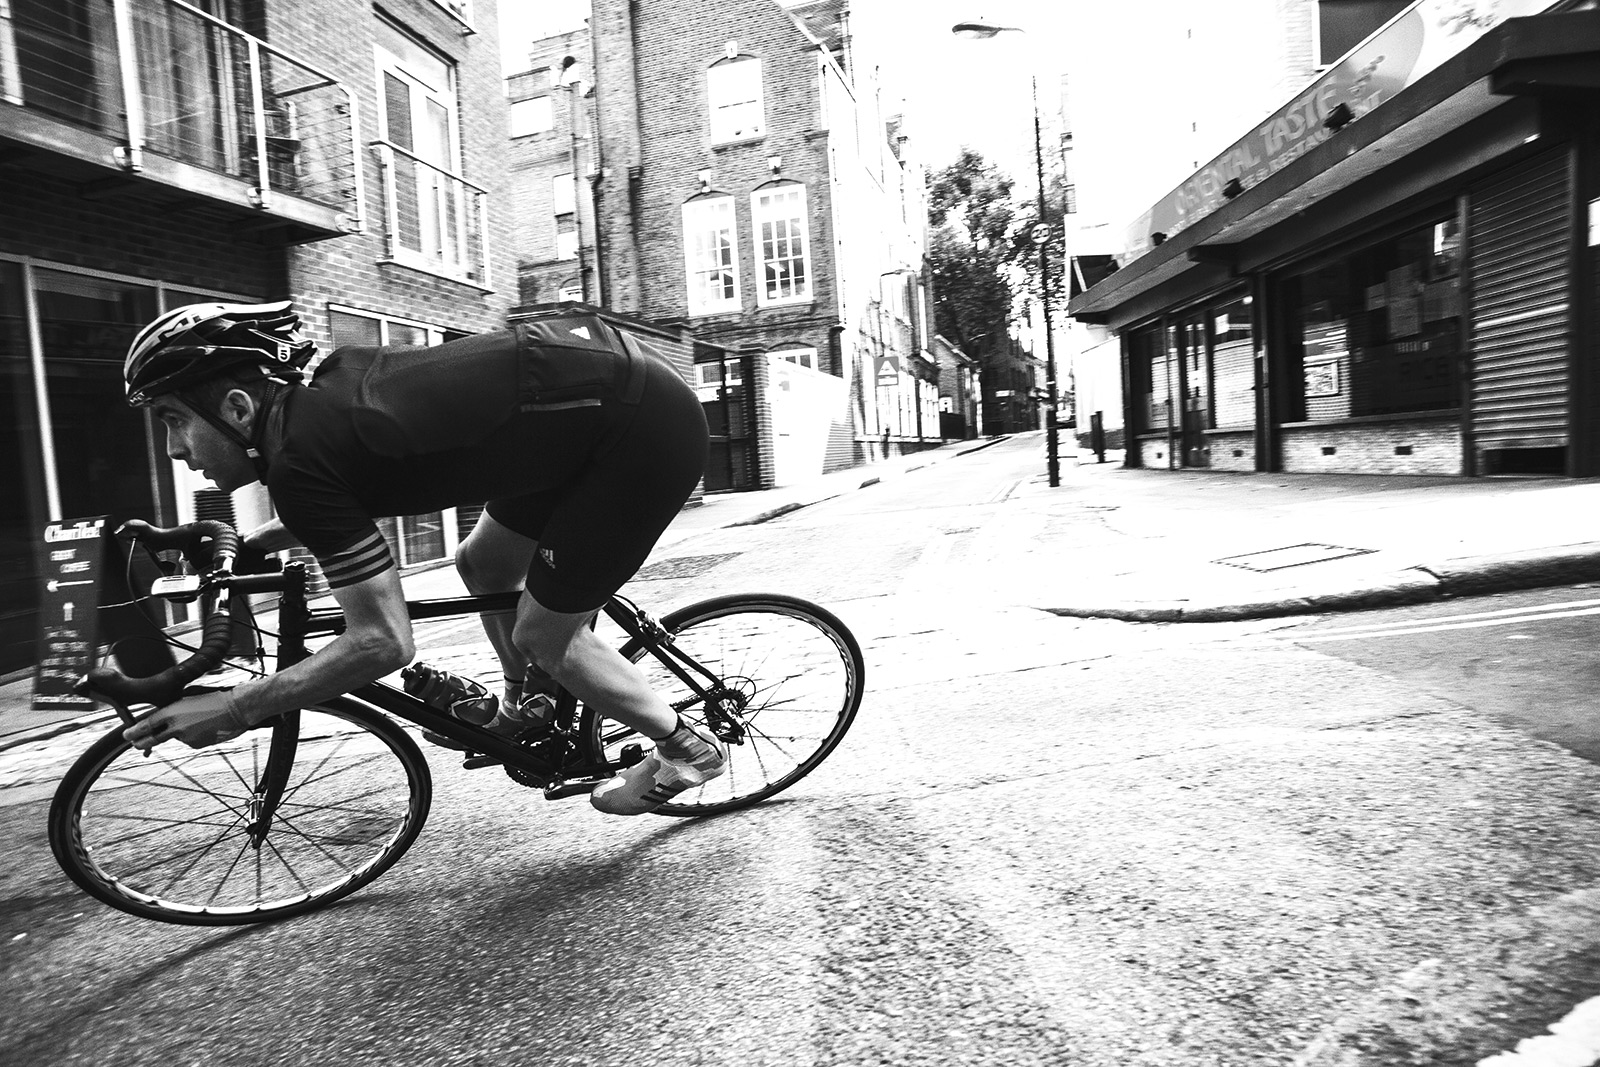 Cyclist riding round a bend wearing adidas cycling gear